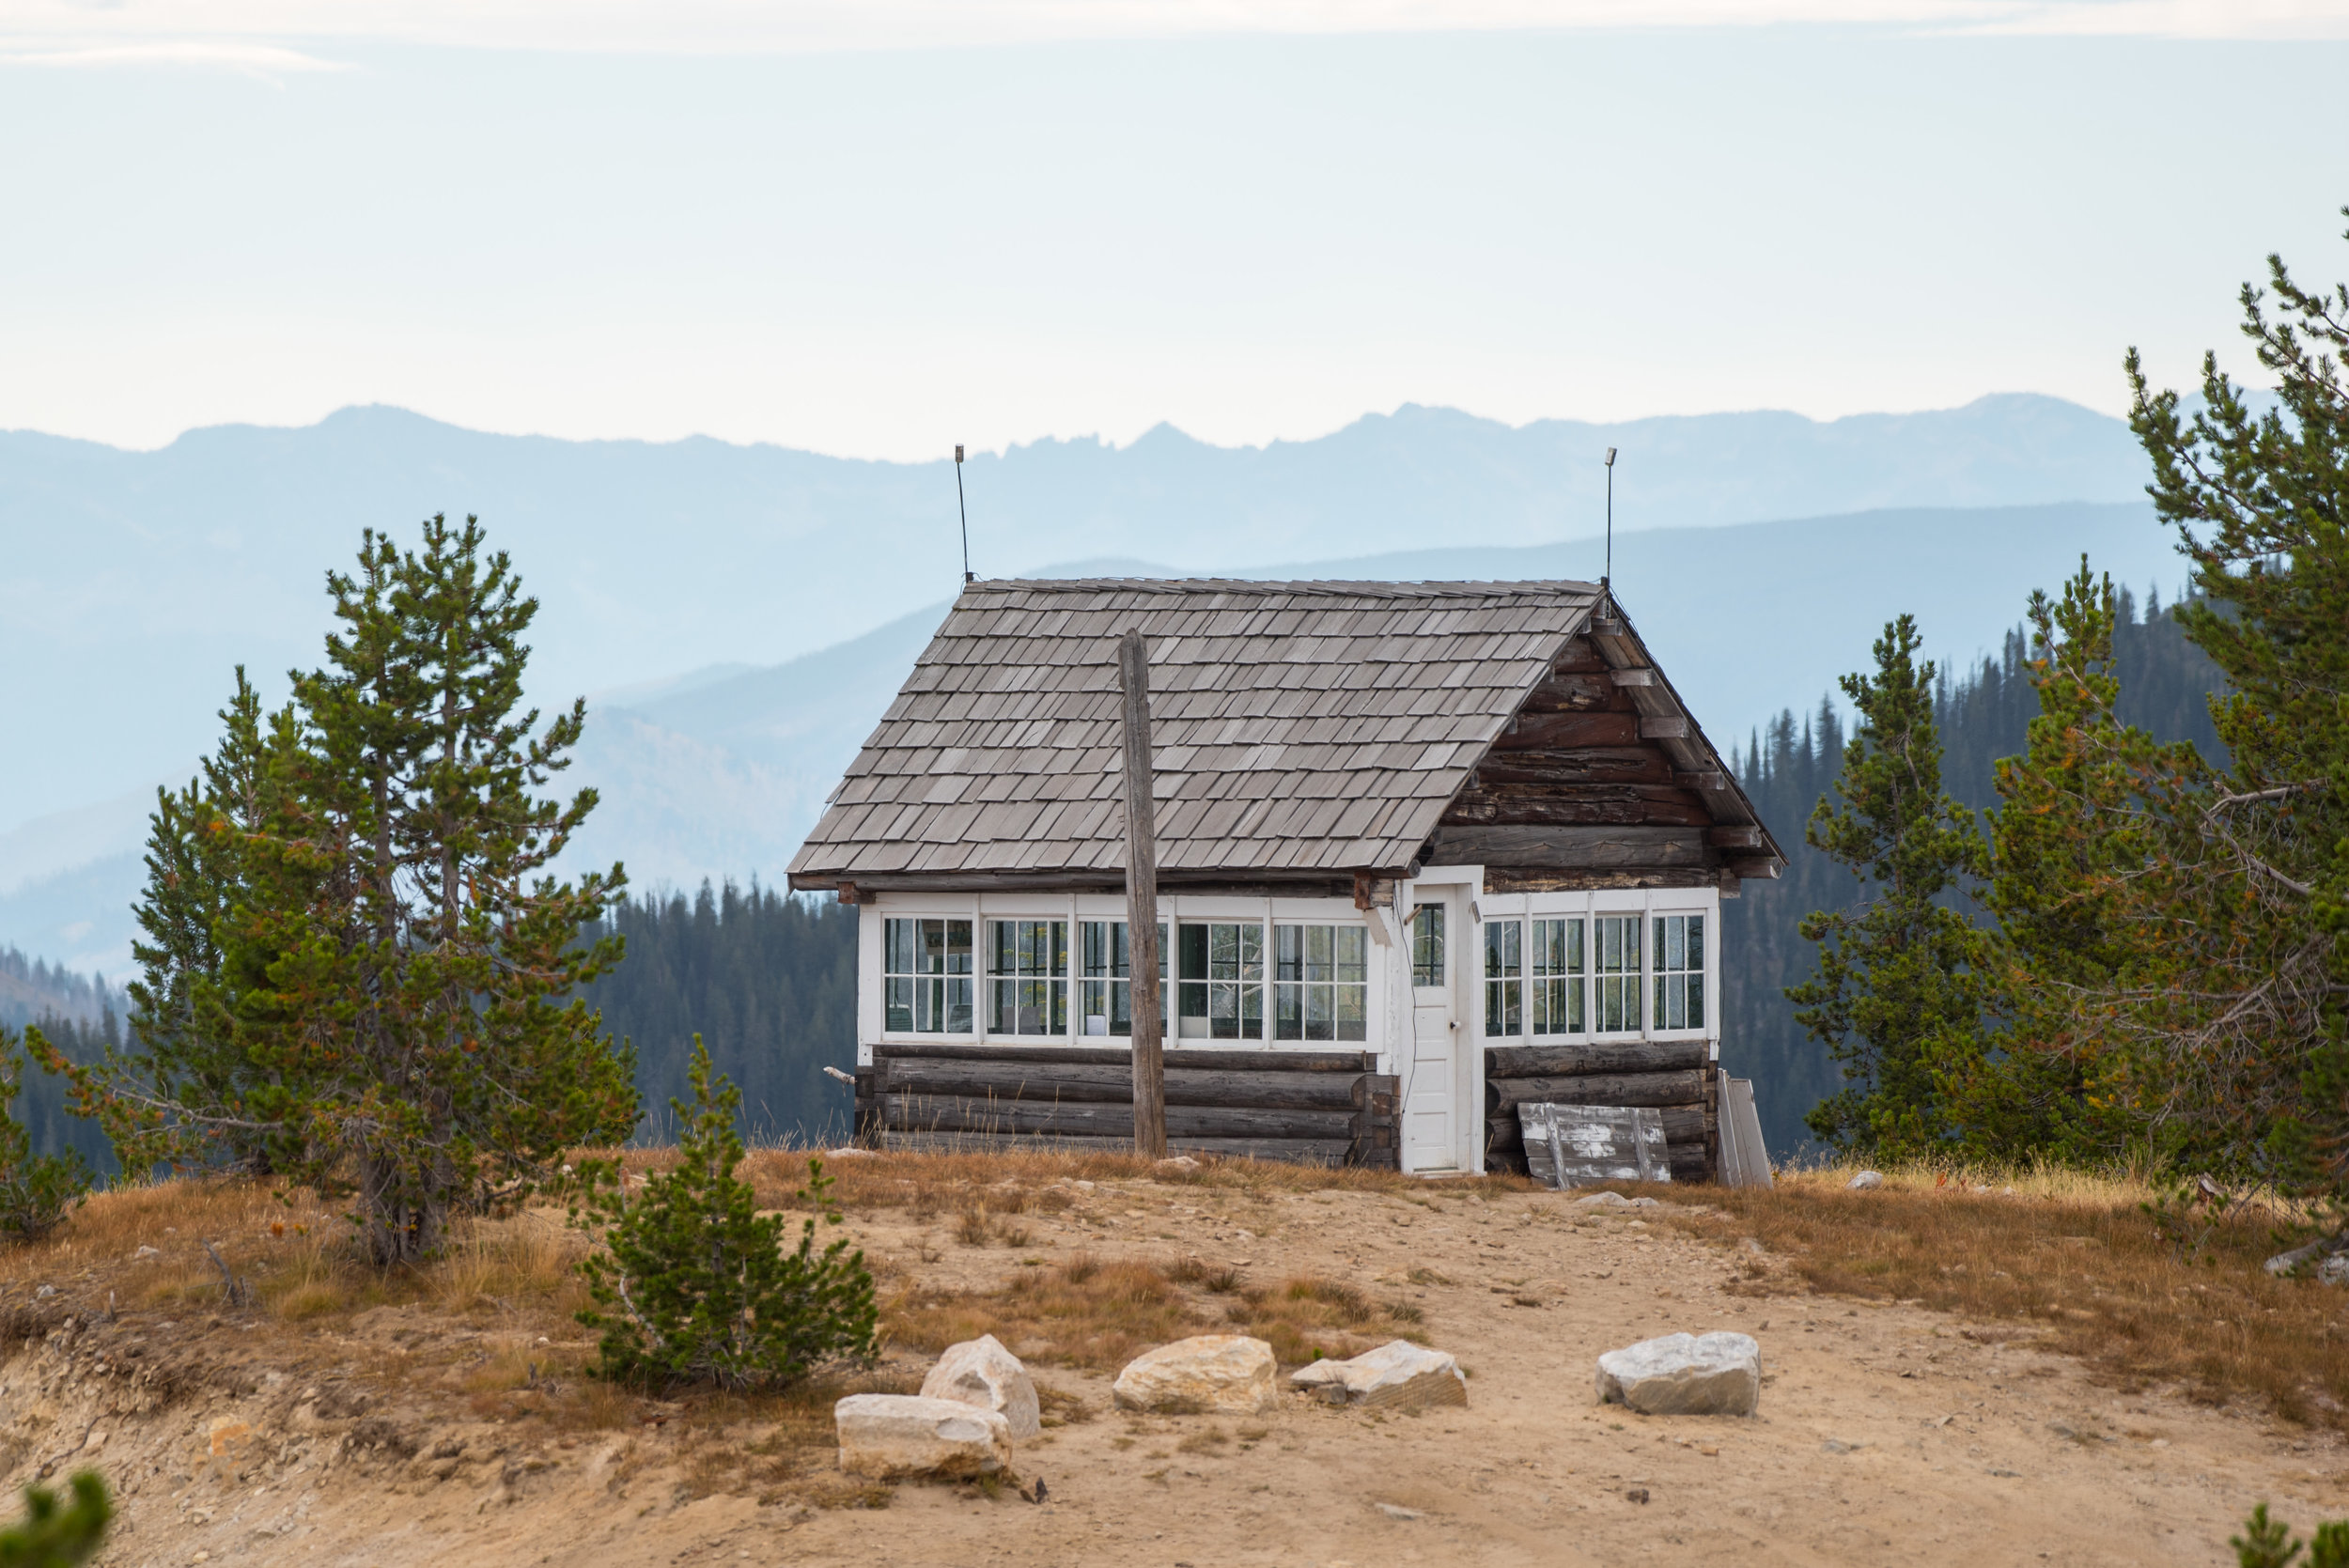 Square Mountain Lookout